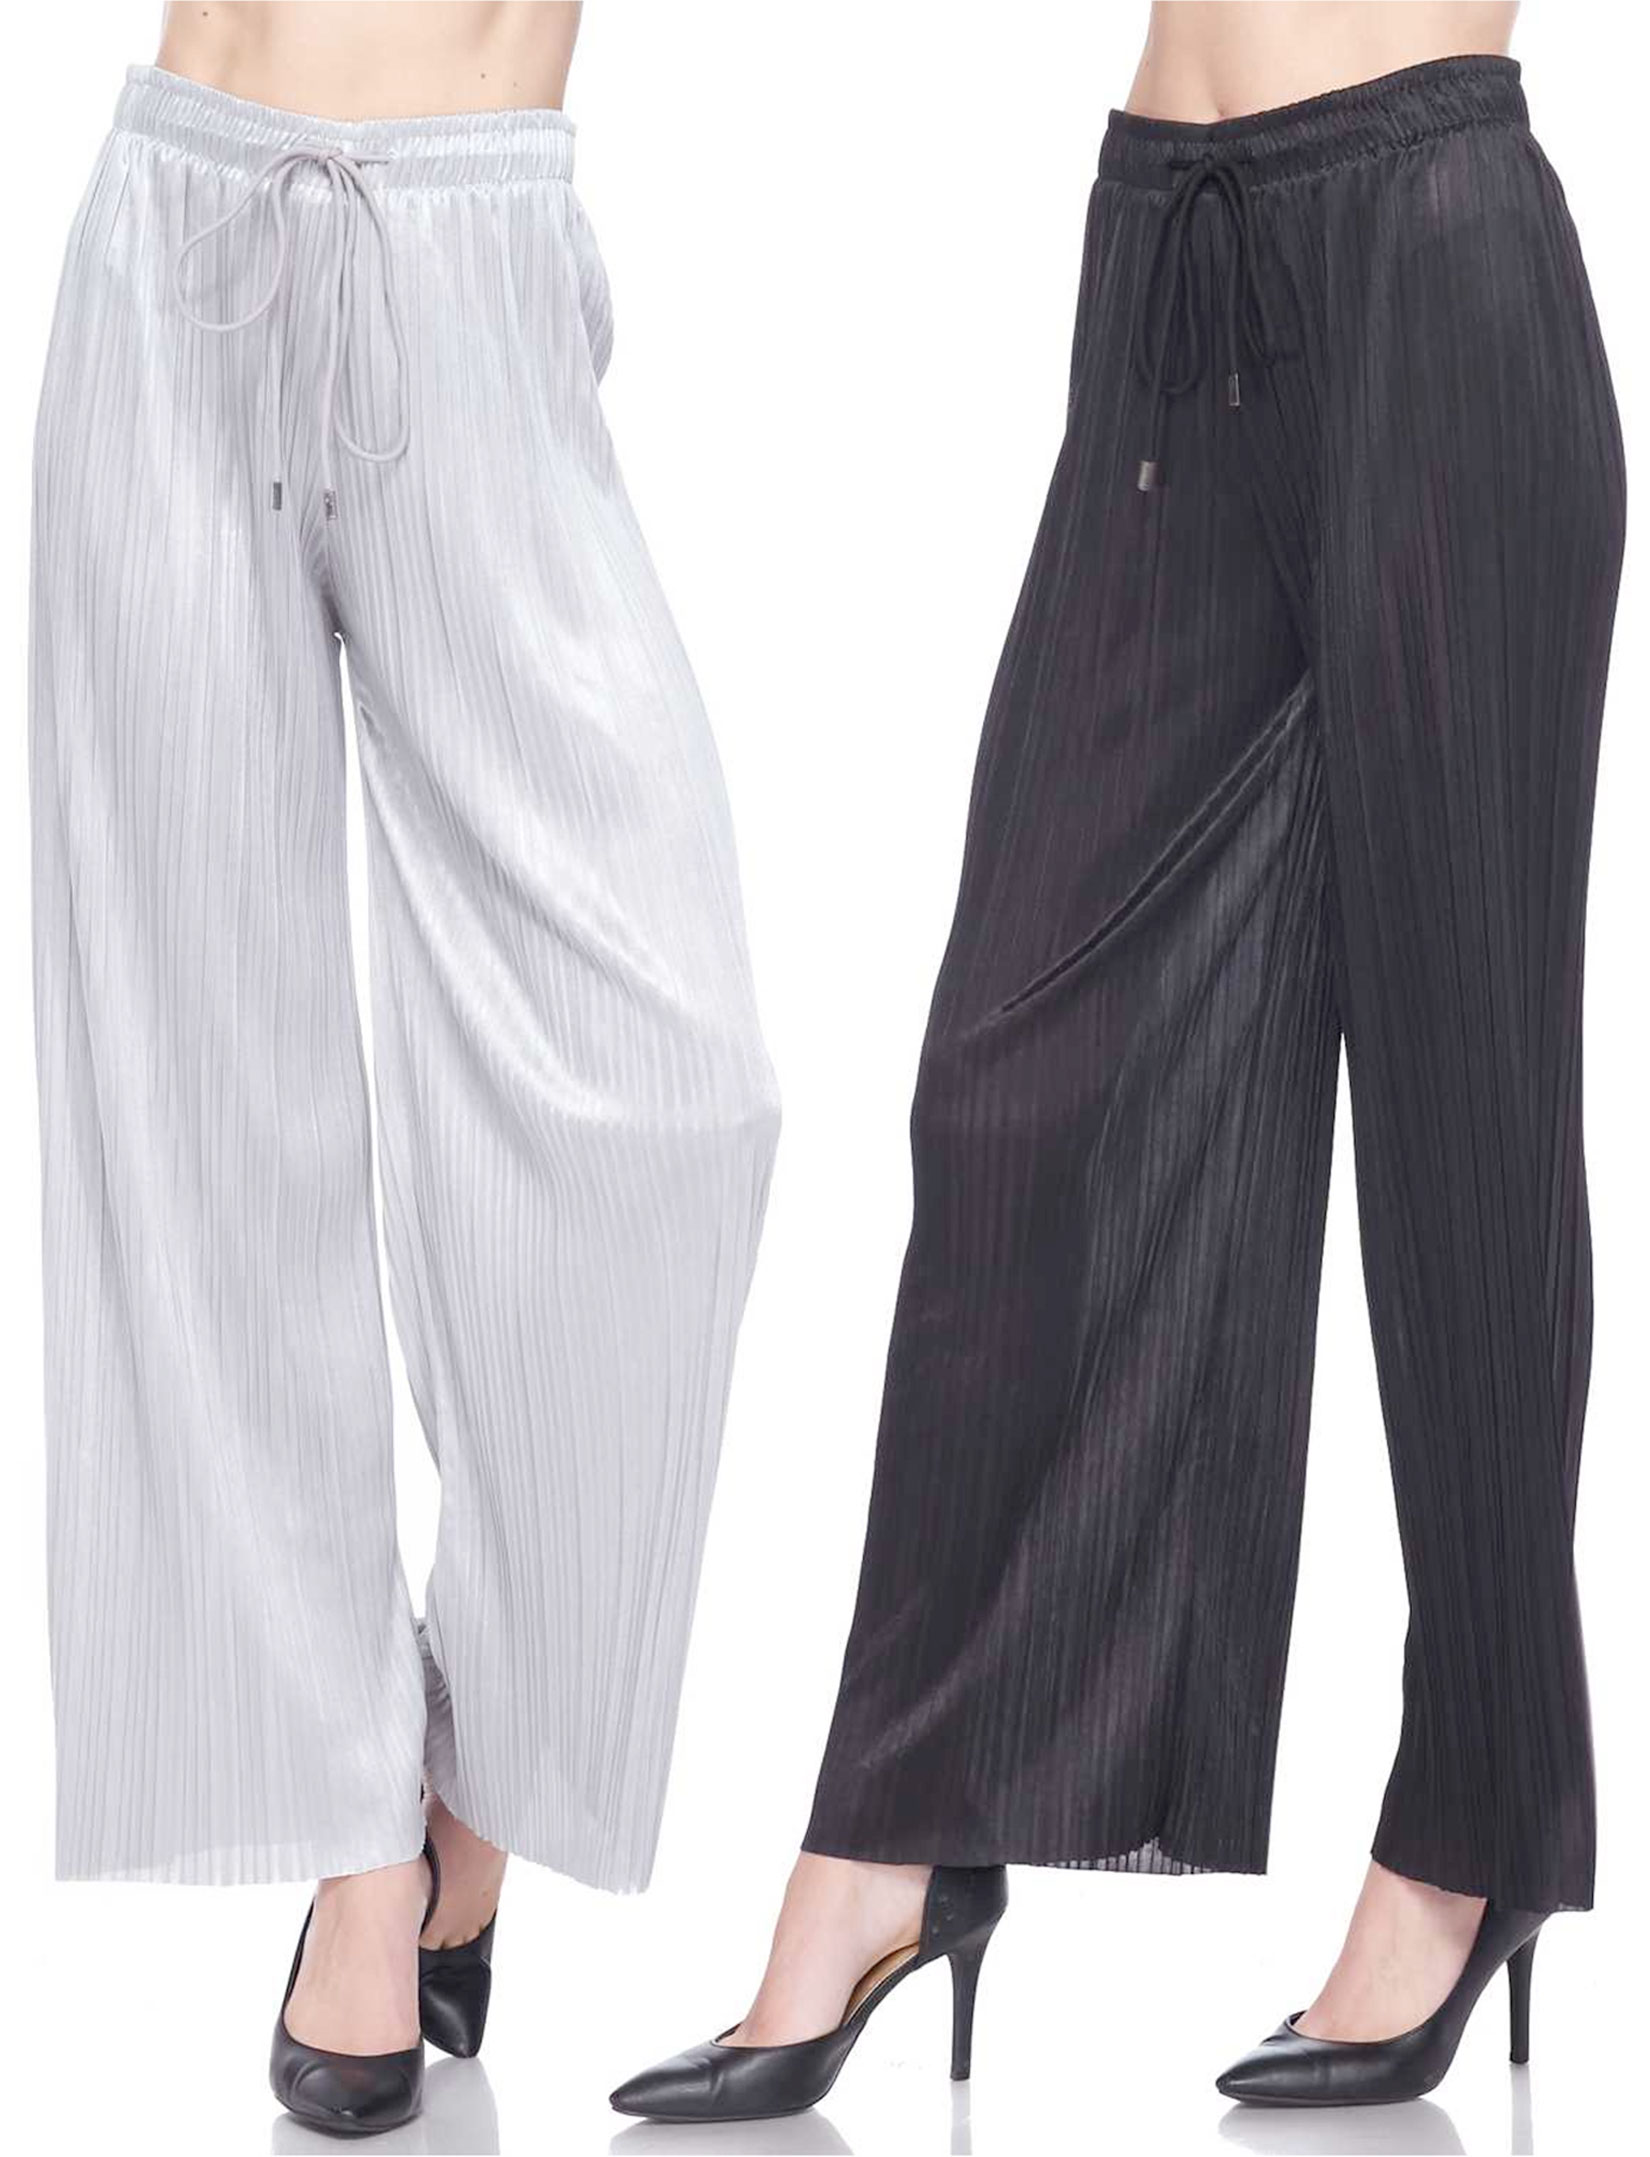 wholesale Pleated Wide Leg Pants - Shimmer